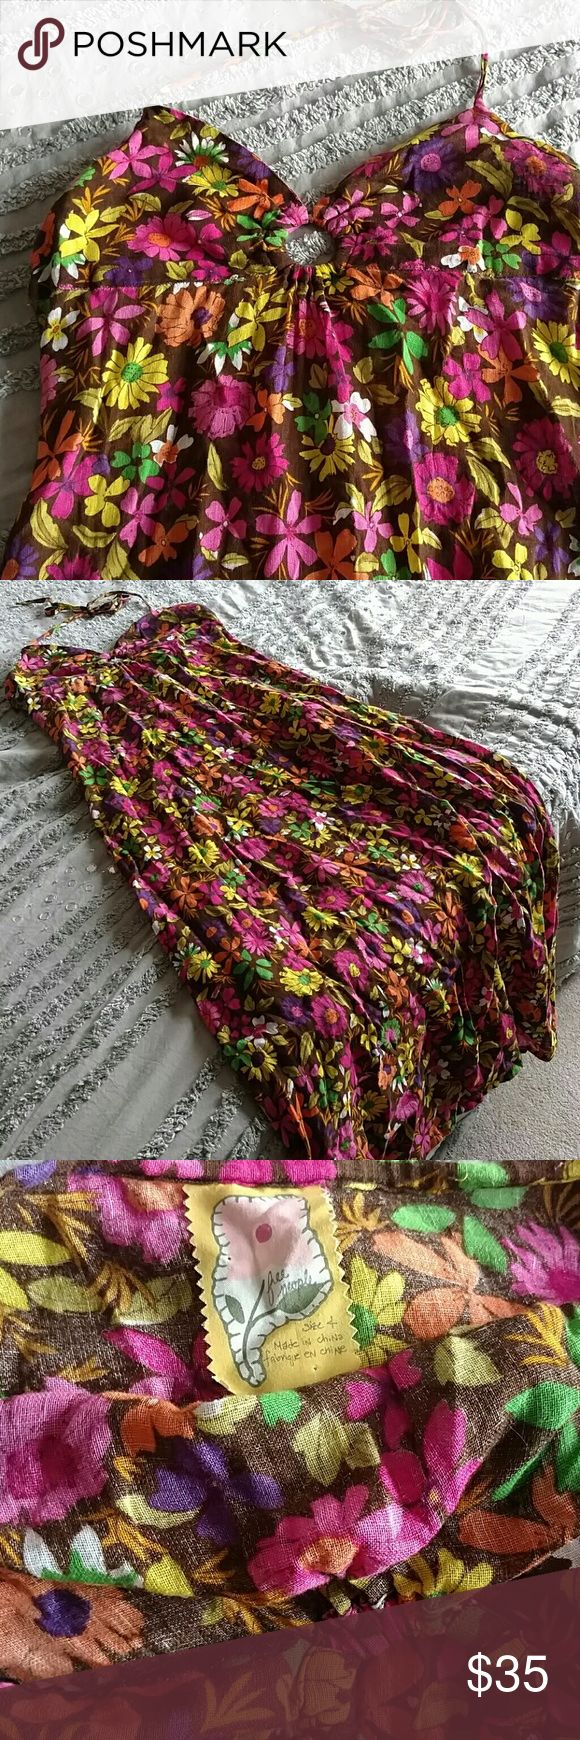 """Free People Summer Flower Maxi Dress Maxi dress by Free People. Made of a soft gauzy cotton. I am 5'5"""" and this maxi dress hits the ground perfectly in flat sandals. The base color is brown with multiple color flowers. The chest is double lined, the top ties around neck and in back. It has a very low back with elastic. There is no zipper. Size is 4. I would say it's a small to medium. It's a little big in the cheat for me. I wore it to a music festival VIP event and got many compliments…"""